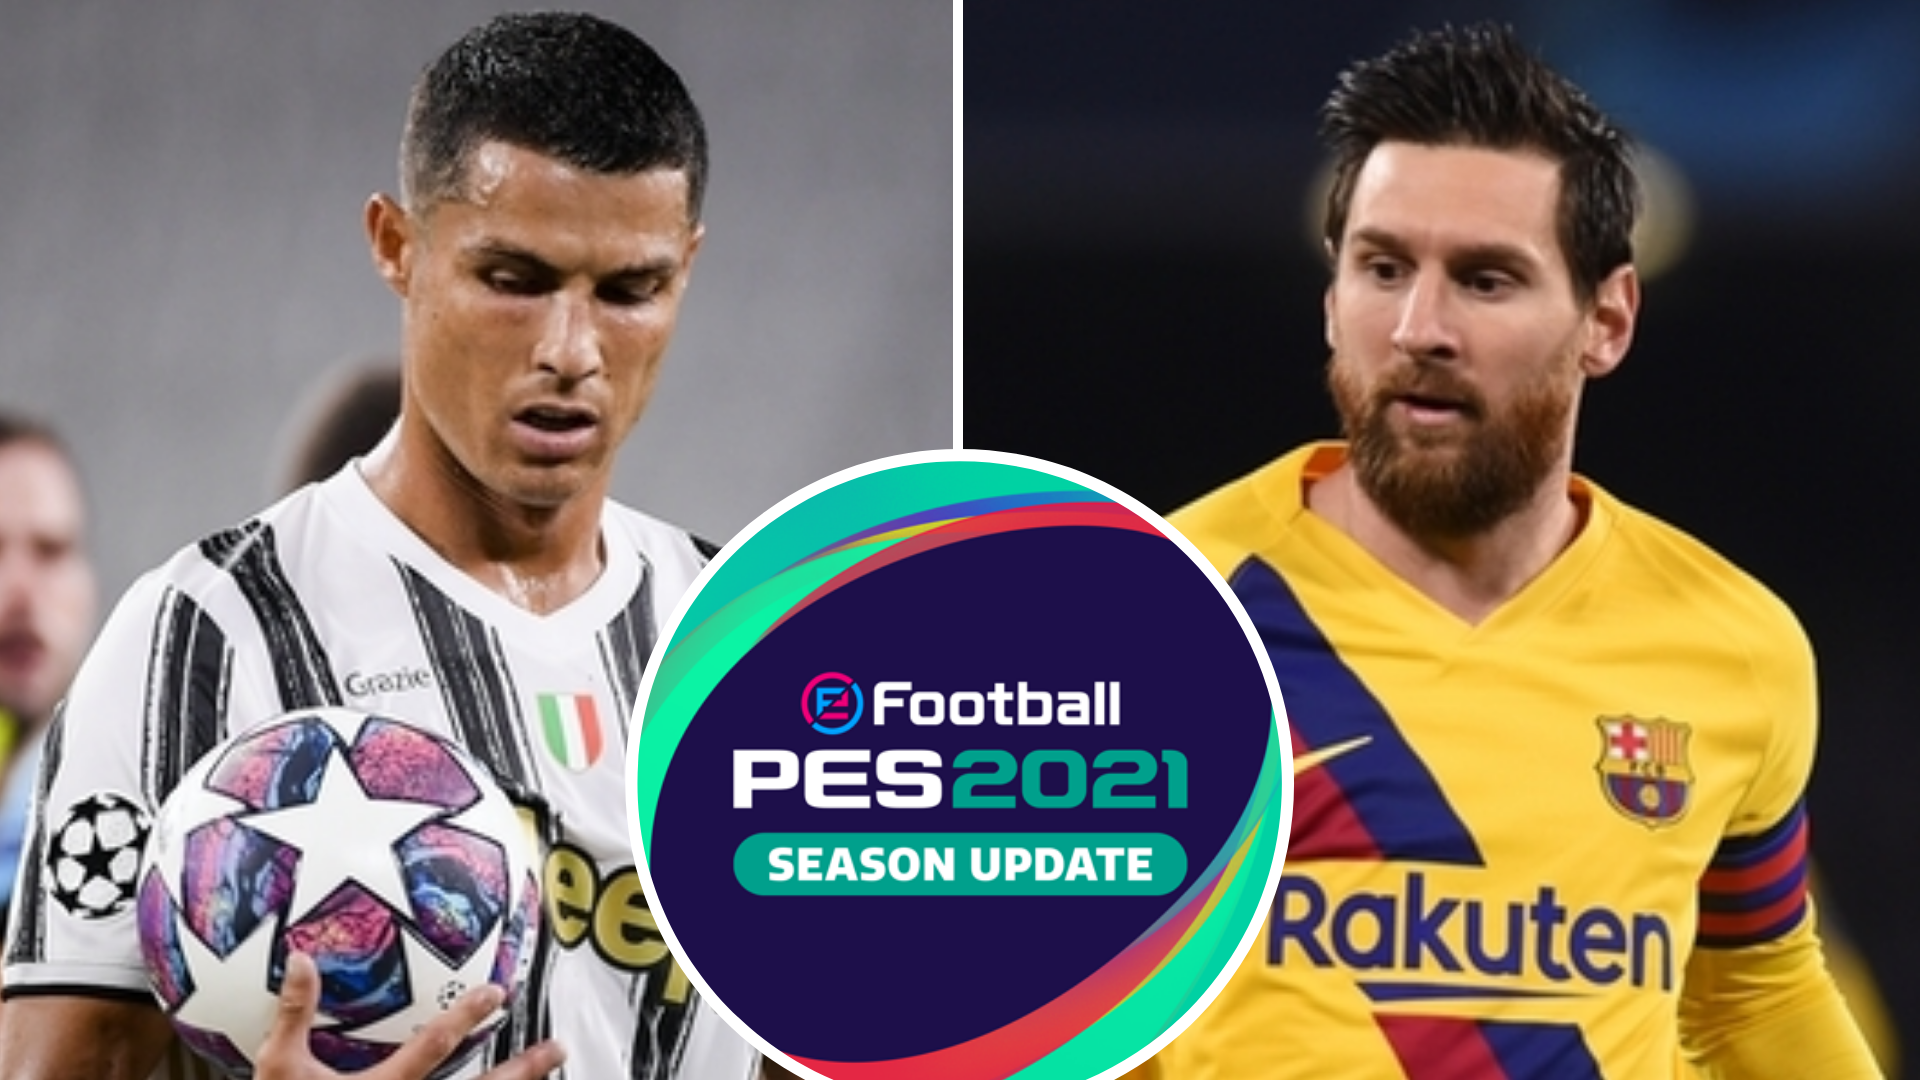 Cristiano Ronaldo And Lionel Messi S Overall Ratings Finally Revealed In Pes 2021 Sportbible